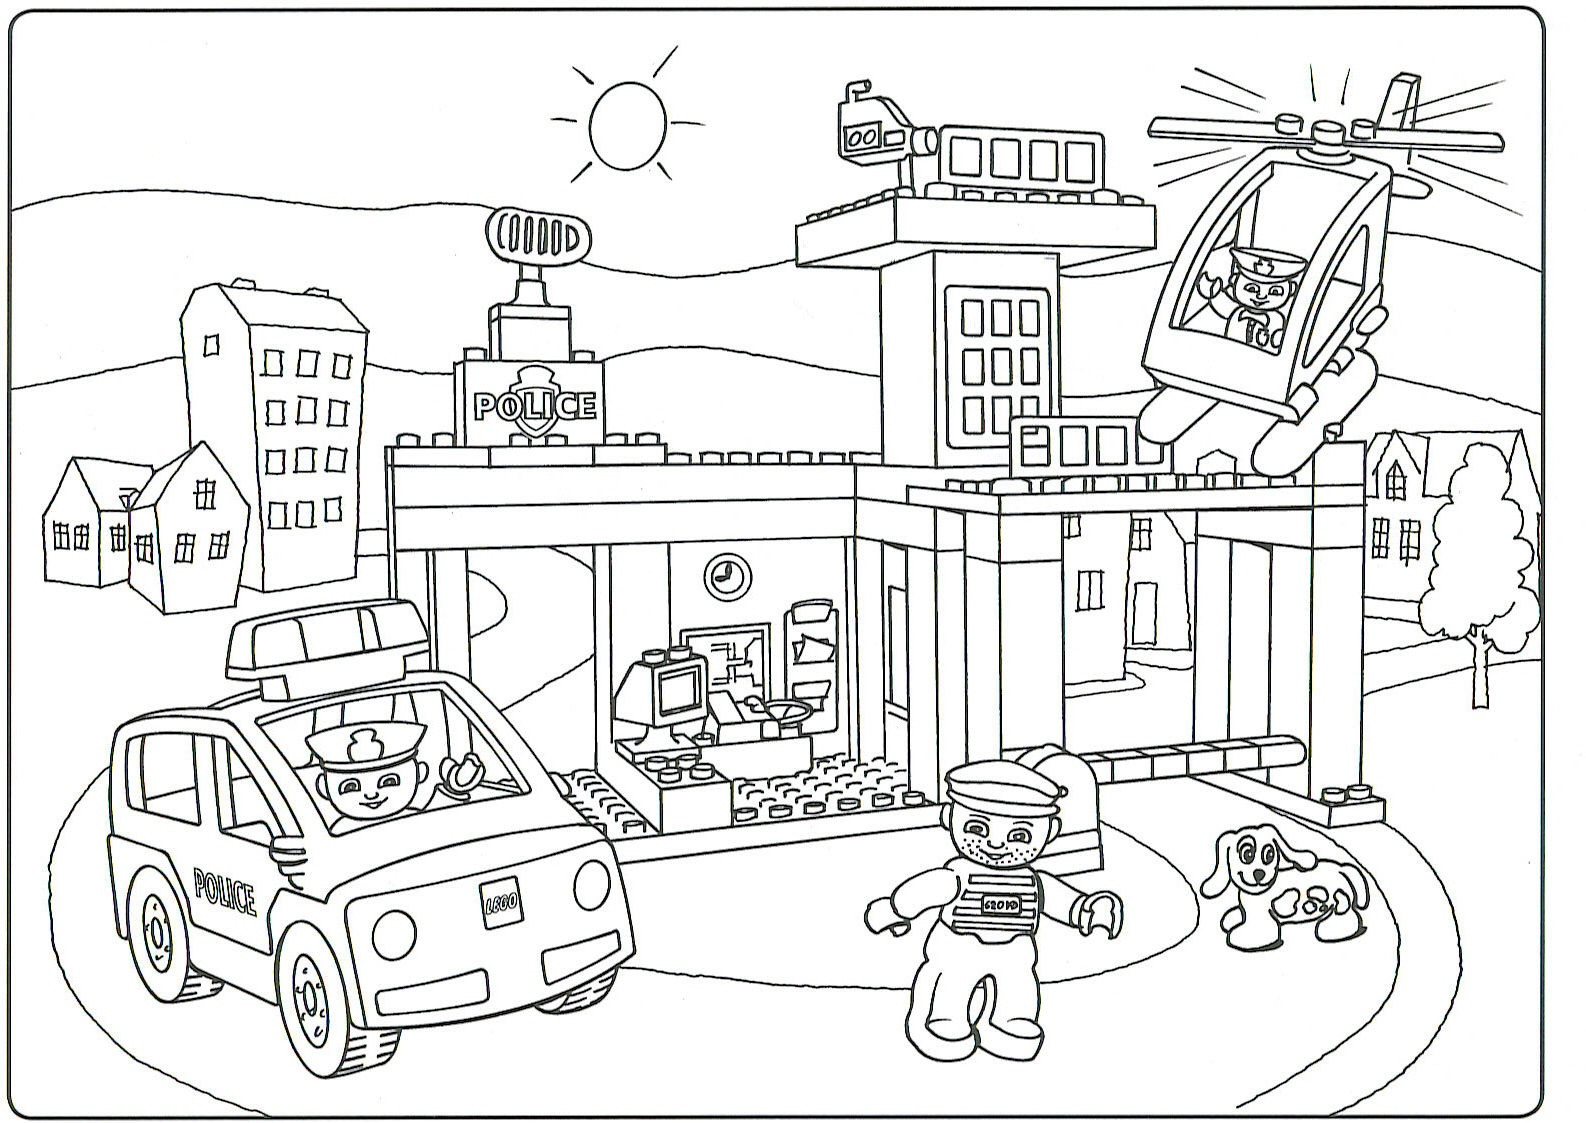 Lego Fire Truck Coloring Pages At Getdrawings Com Free For